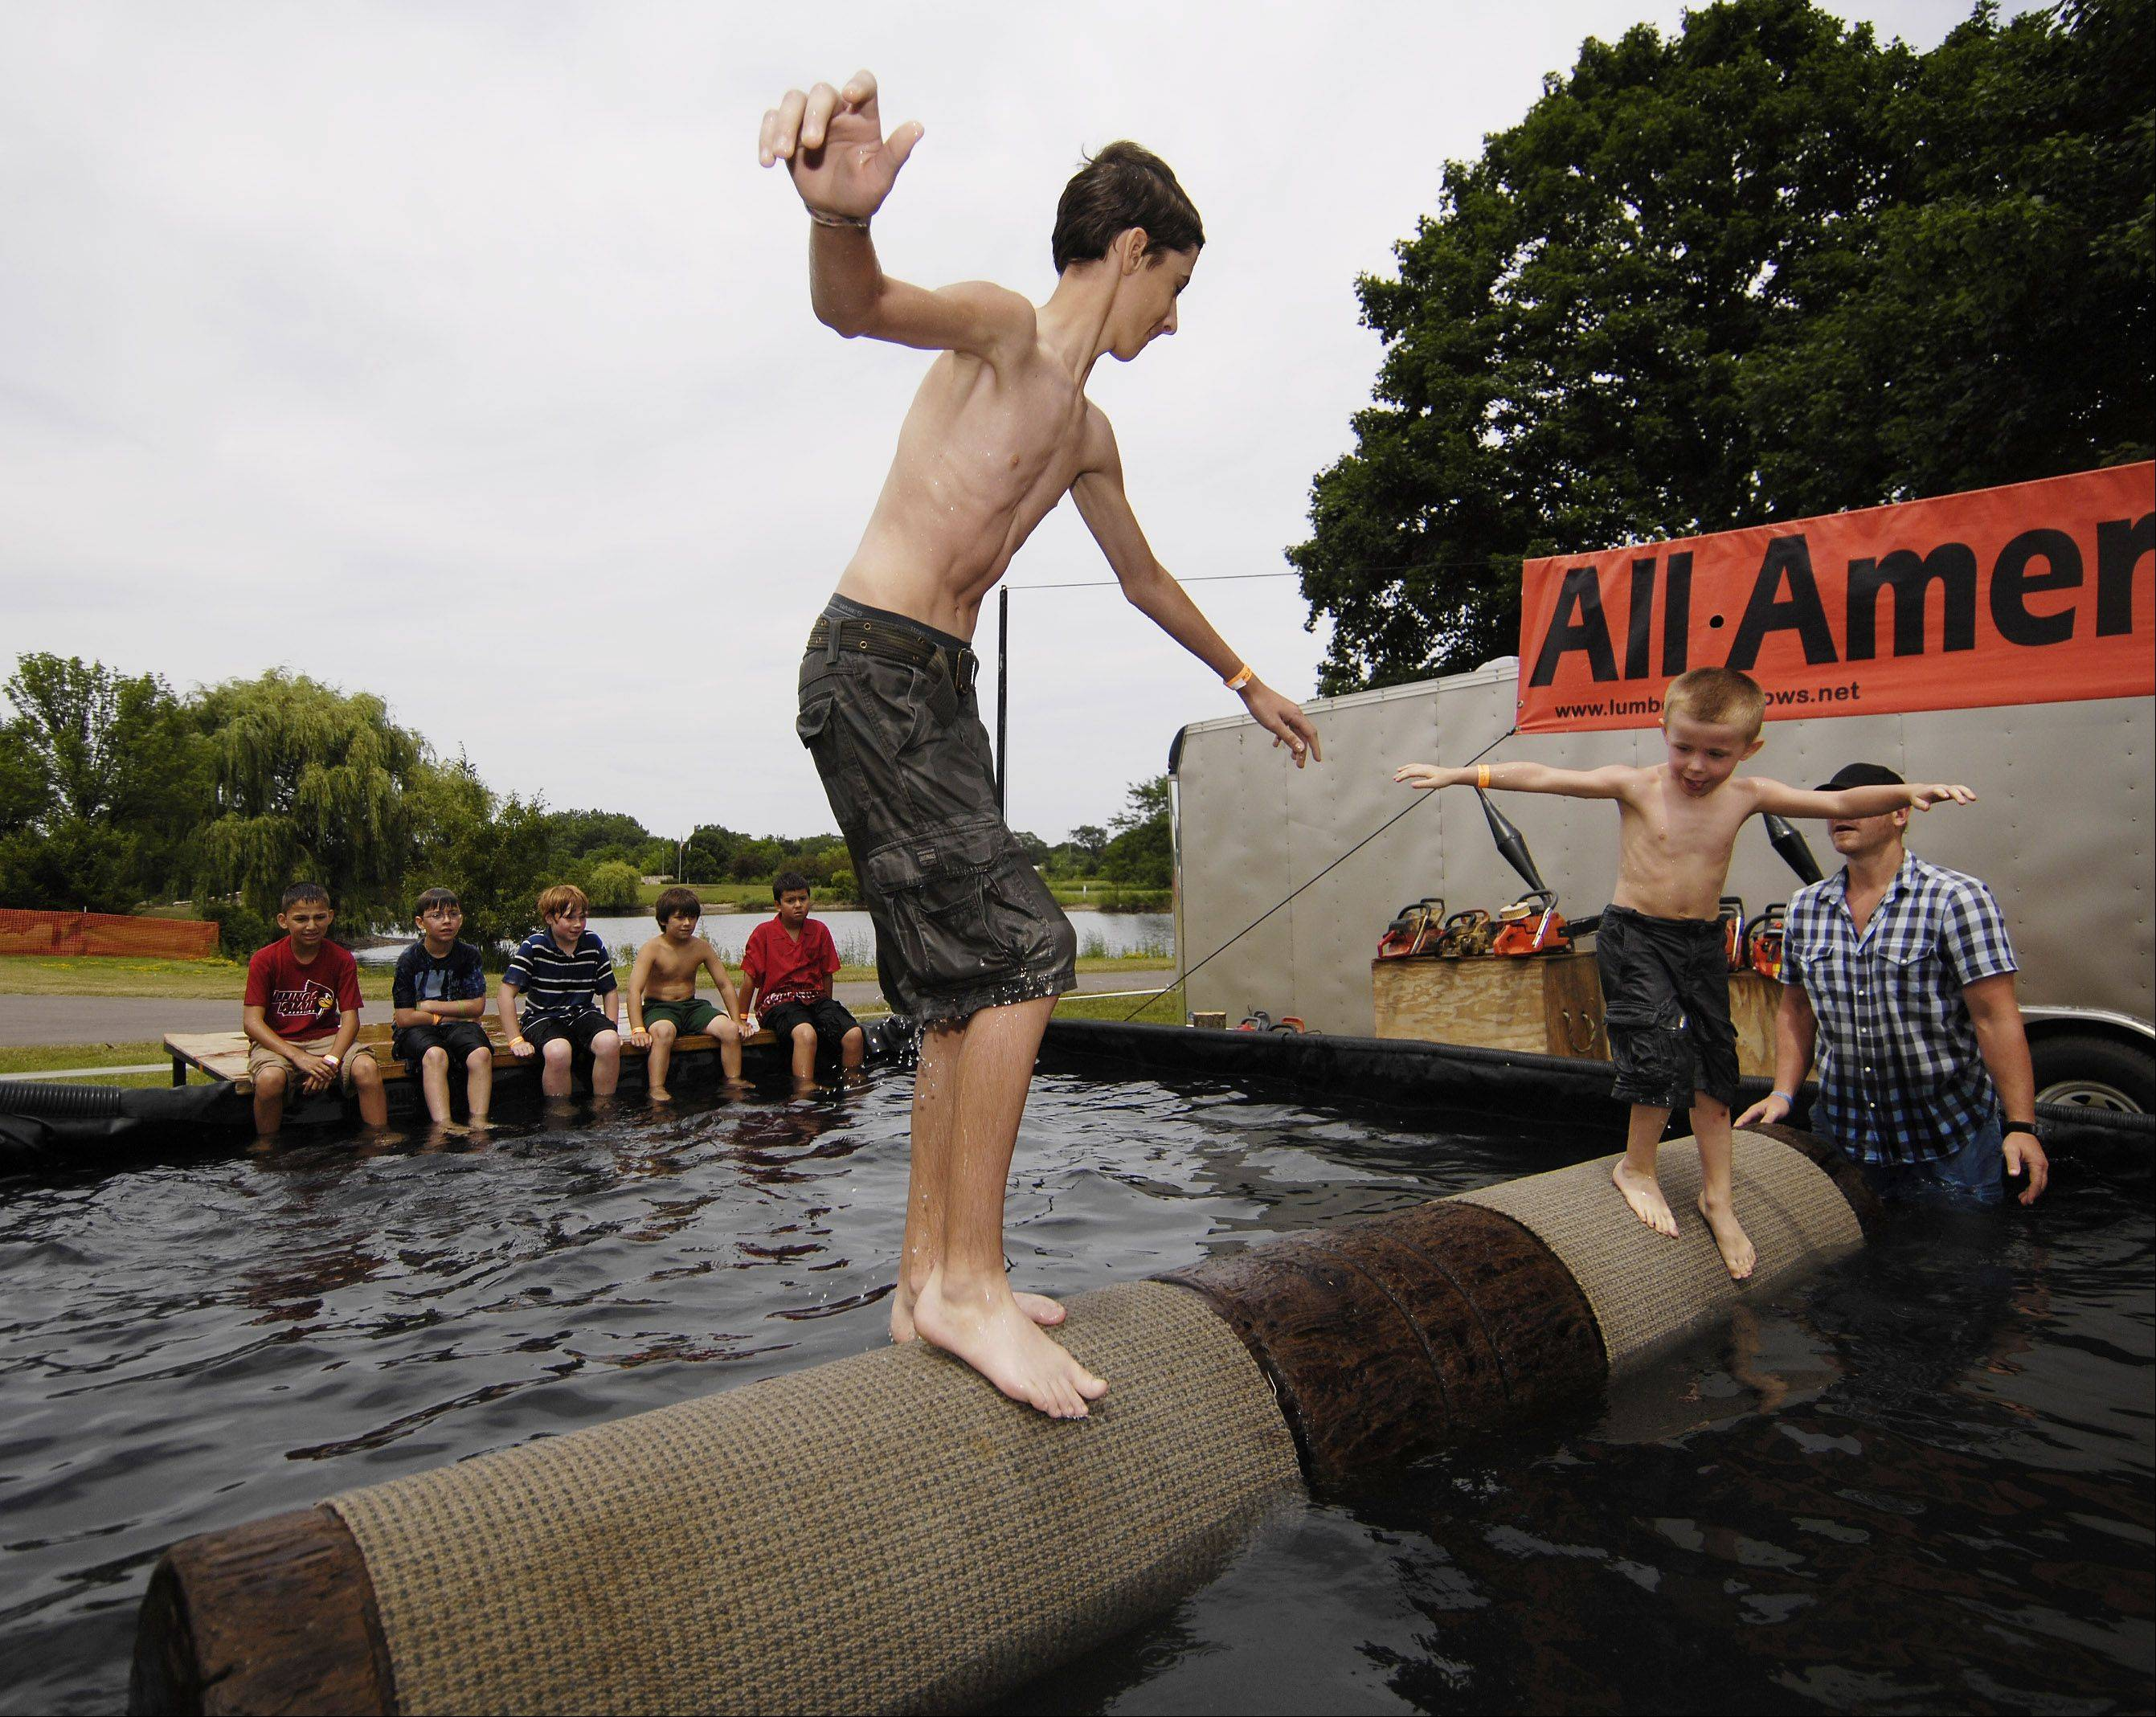 Justin, 15, and Logan Fernandes, 5, of Lisle, try out log rolling at the Eyes to the Skies Festival in Lisle Sunday.